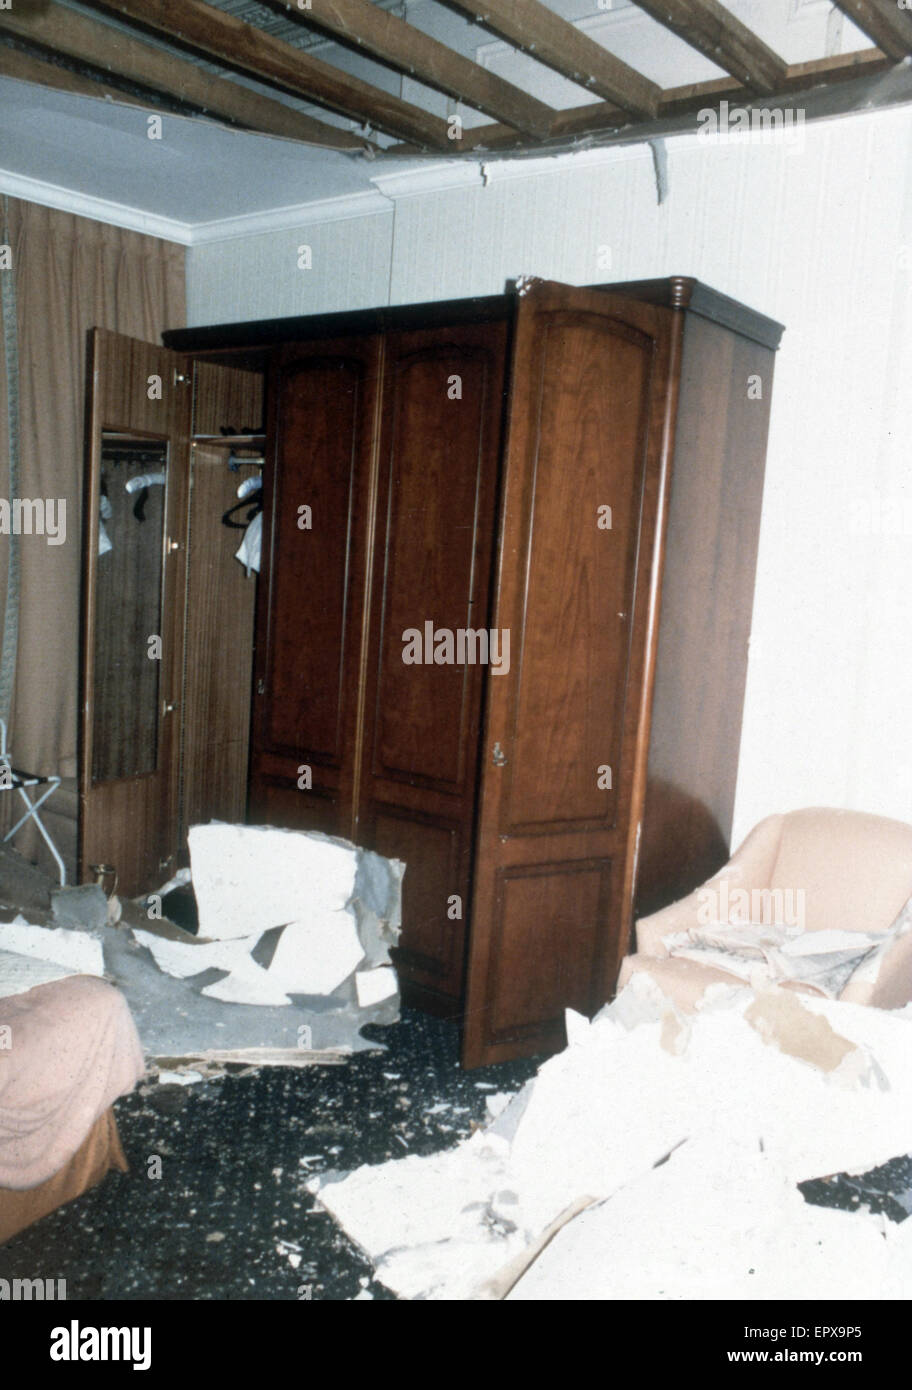 Interior view showing damage to the bedroom occupied by Margaret and Dennis Thatcher at the Grand Hotel in Brighton - Stock Image